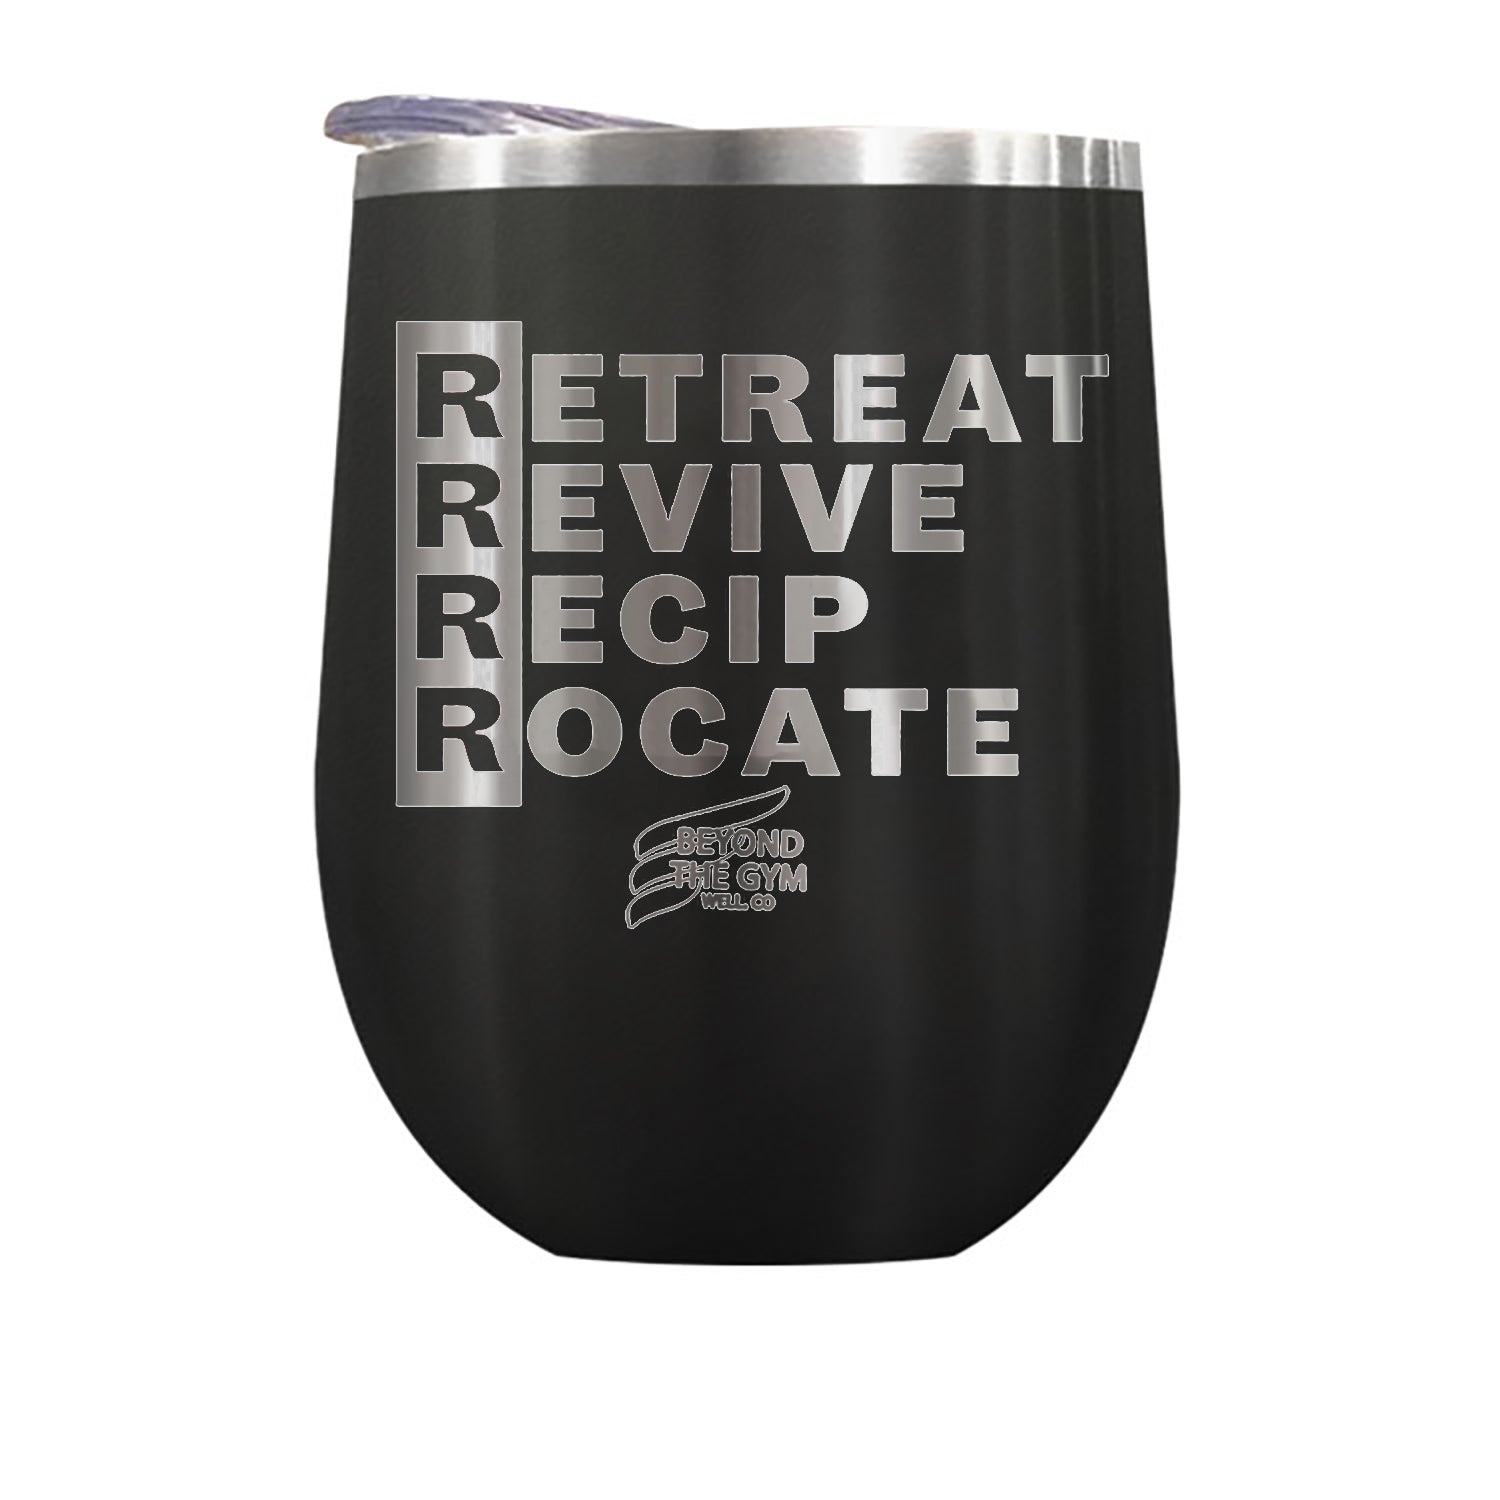 Retreat Revive Reciprocate Beyond The Gym Well Co. Stemless Wine, Coffee, & Hot Coco Tumbler Drinkware